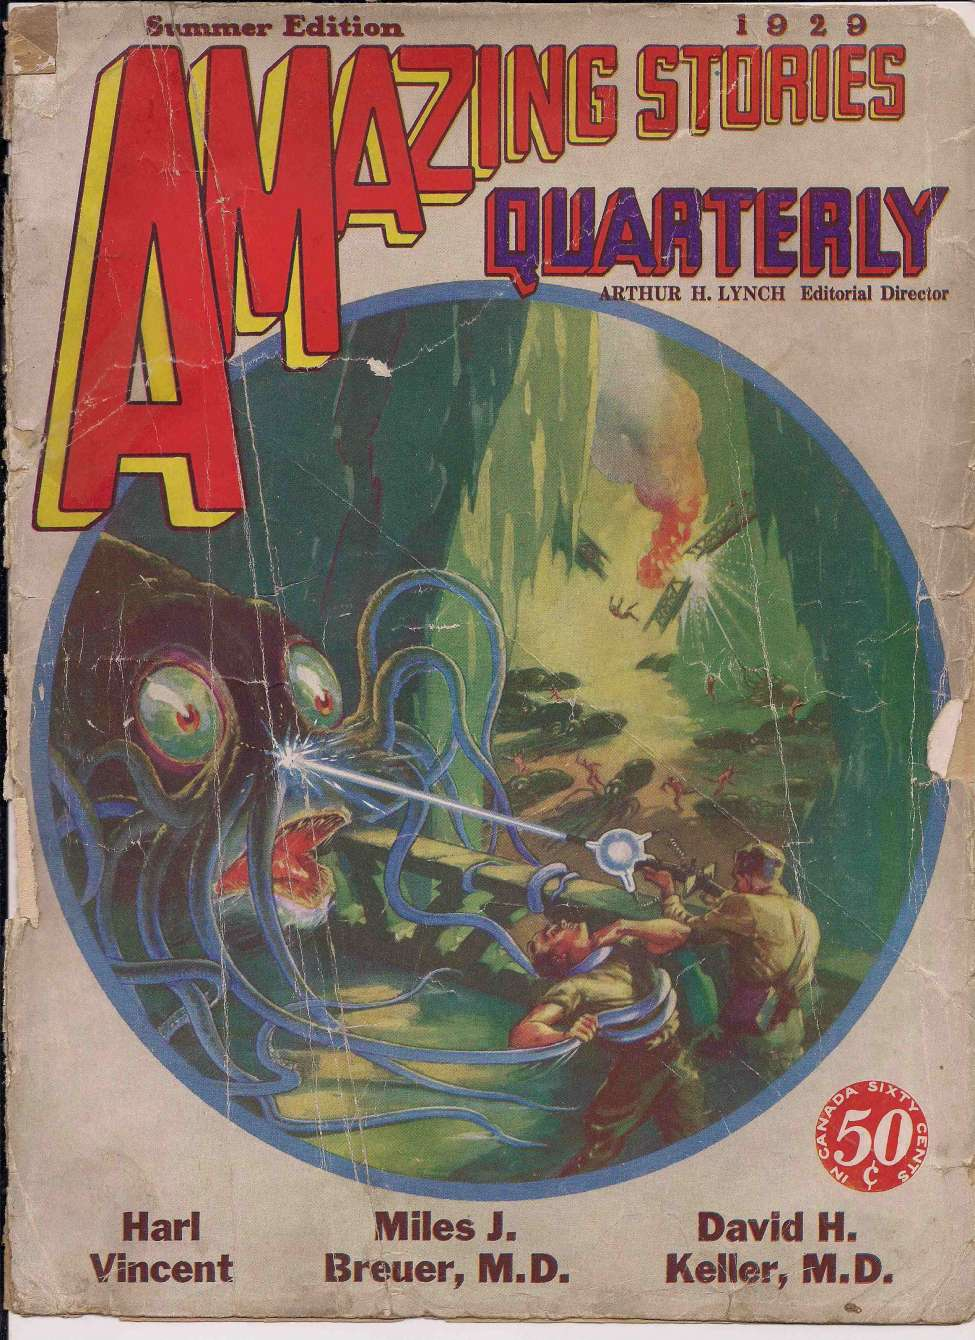 Comic Book Cover For Amazing Stories Quarterly v2 03 - Venus Liberated - Harl Vincent